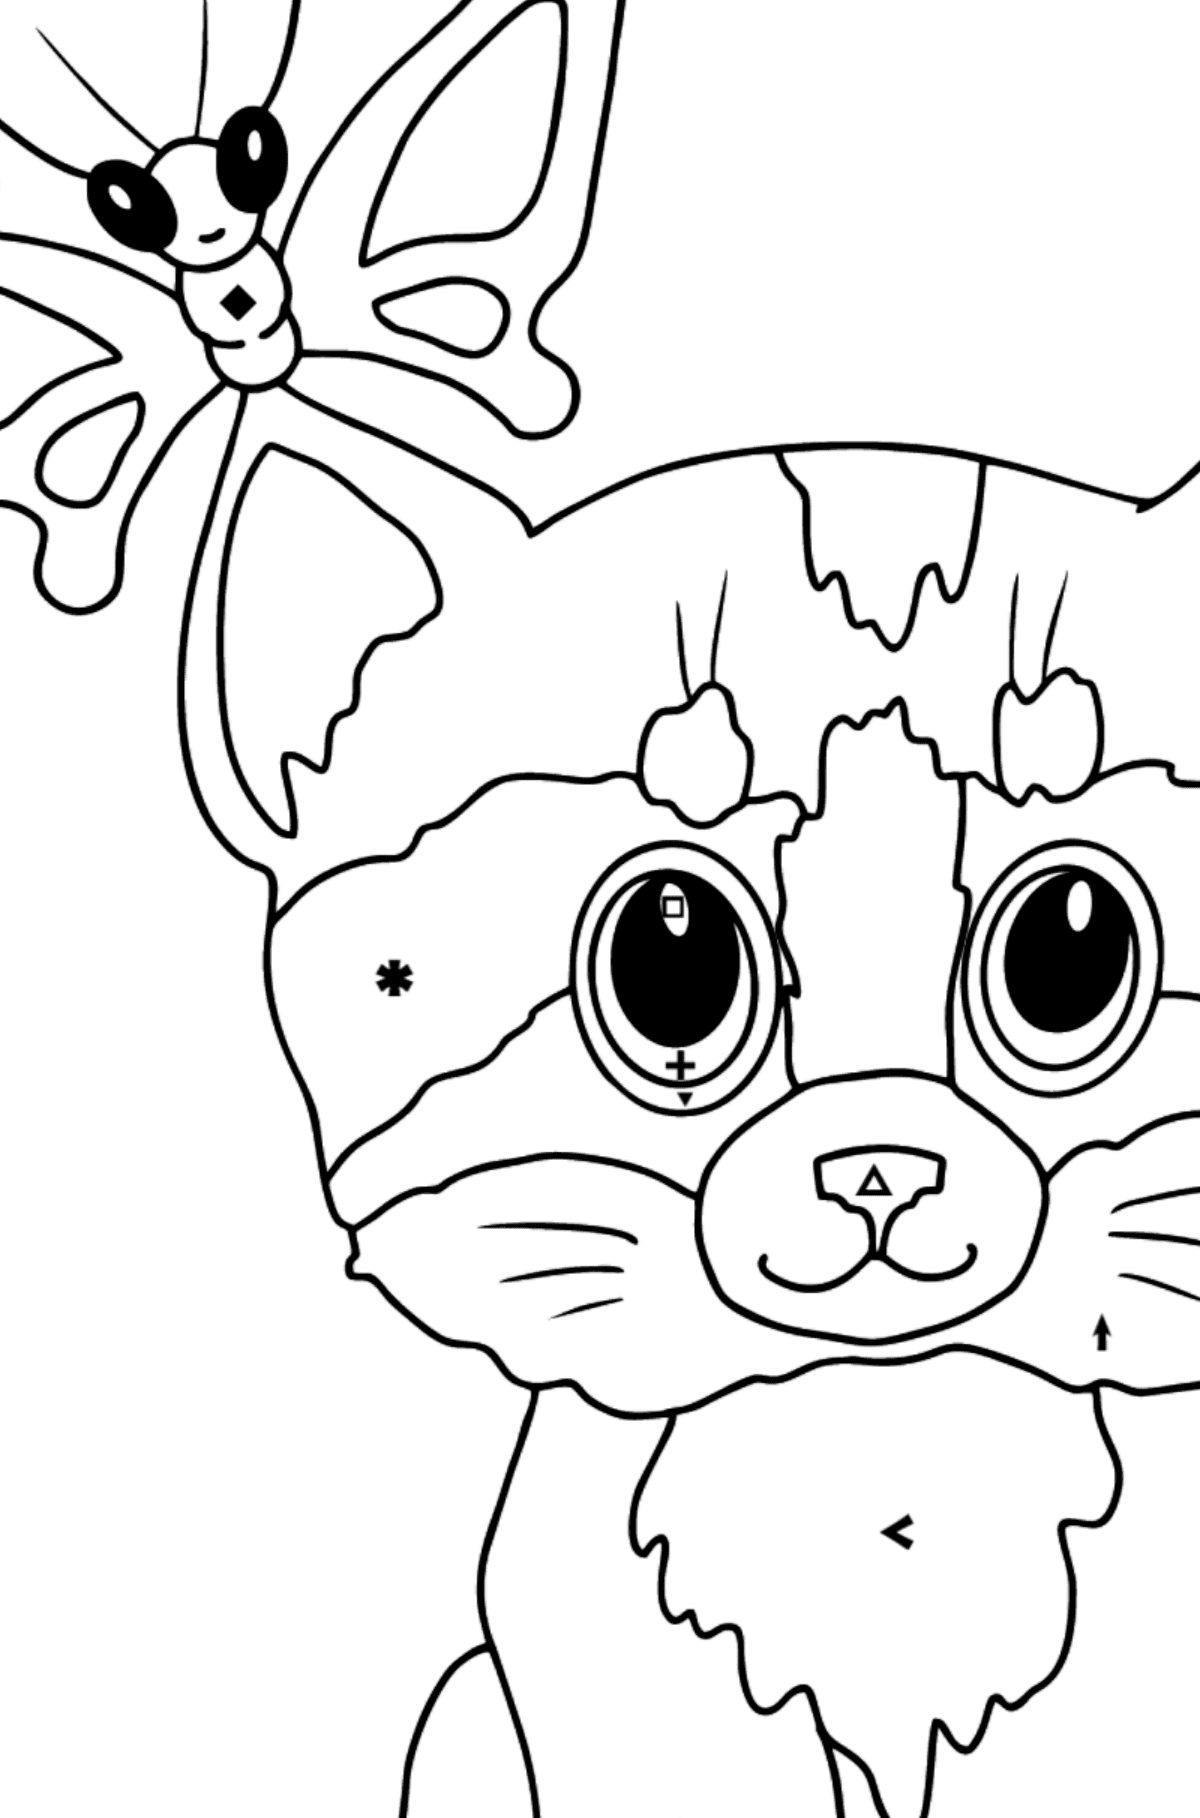 Coloring Page - A Kitten has Caught a Butterfly - Coloring by Symbols for Kids